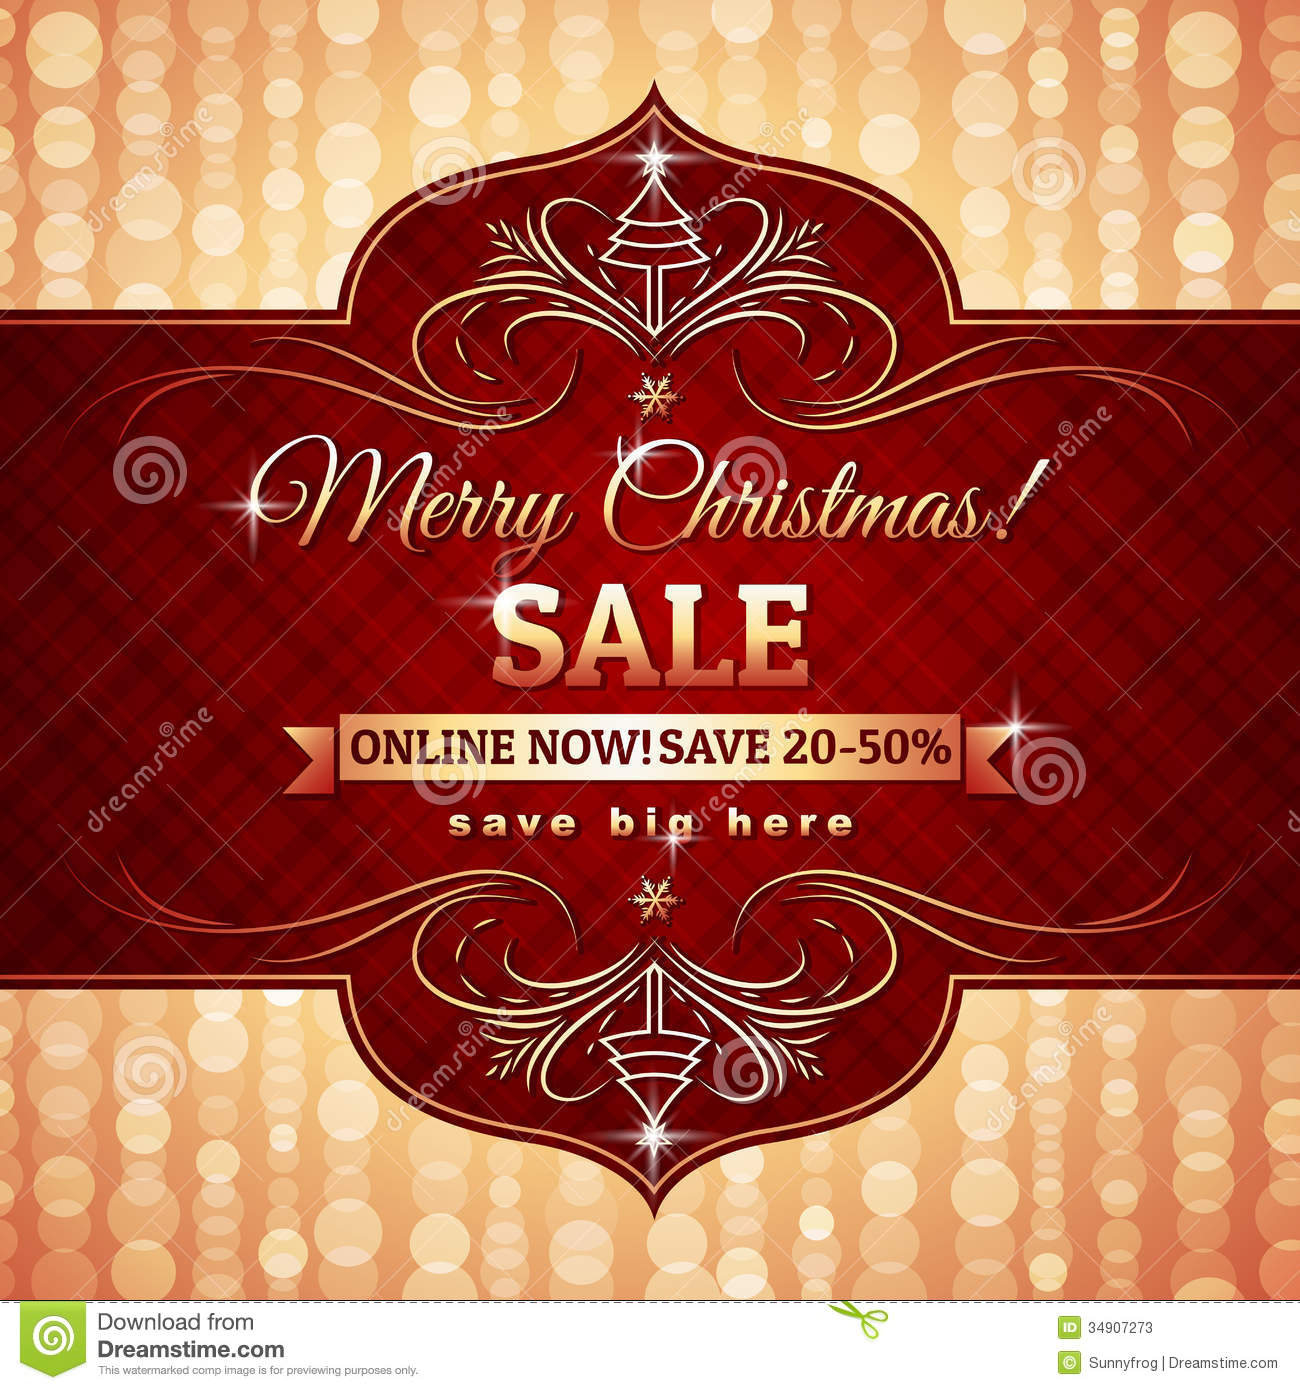 536affee10e6 Red Christmas Background And Label With Sale Offer Stock Vector ...